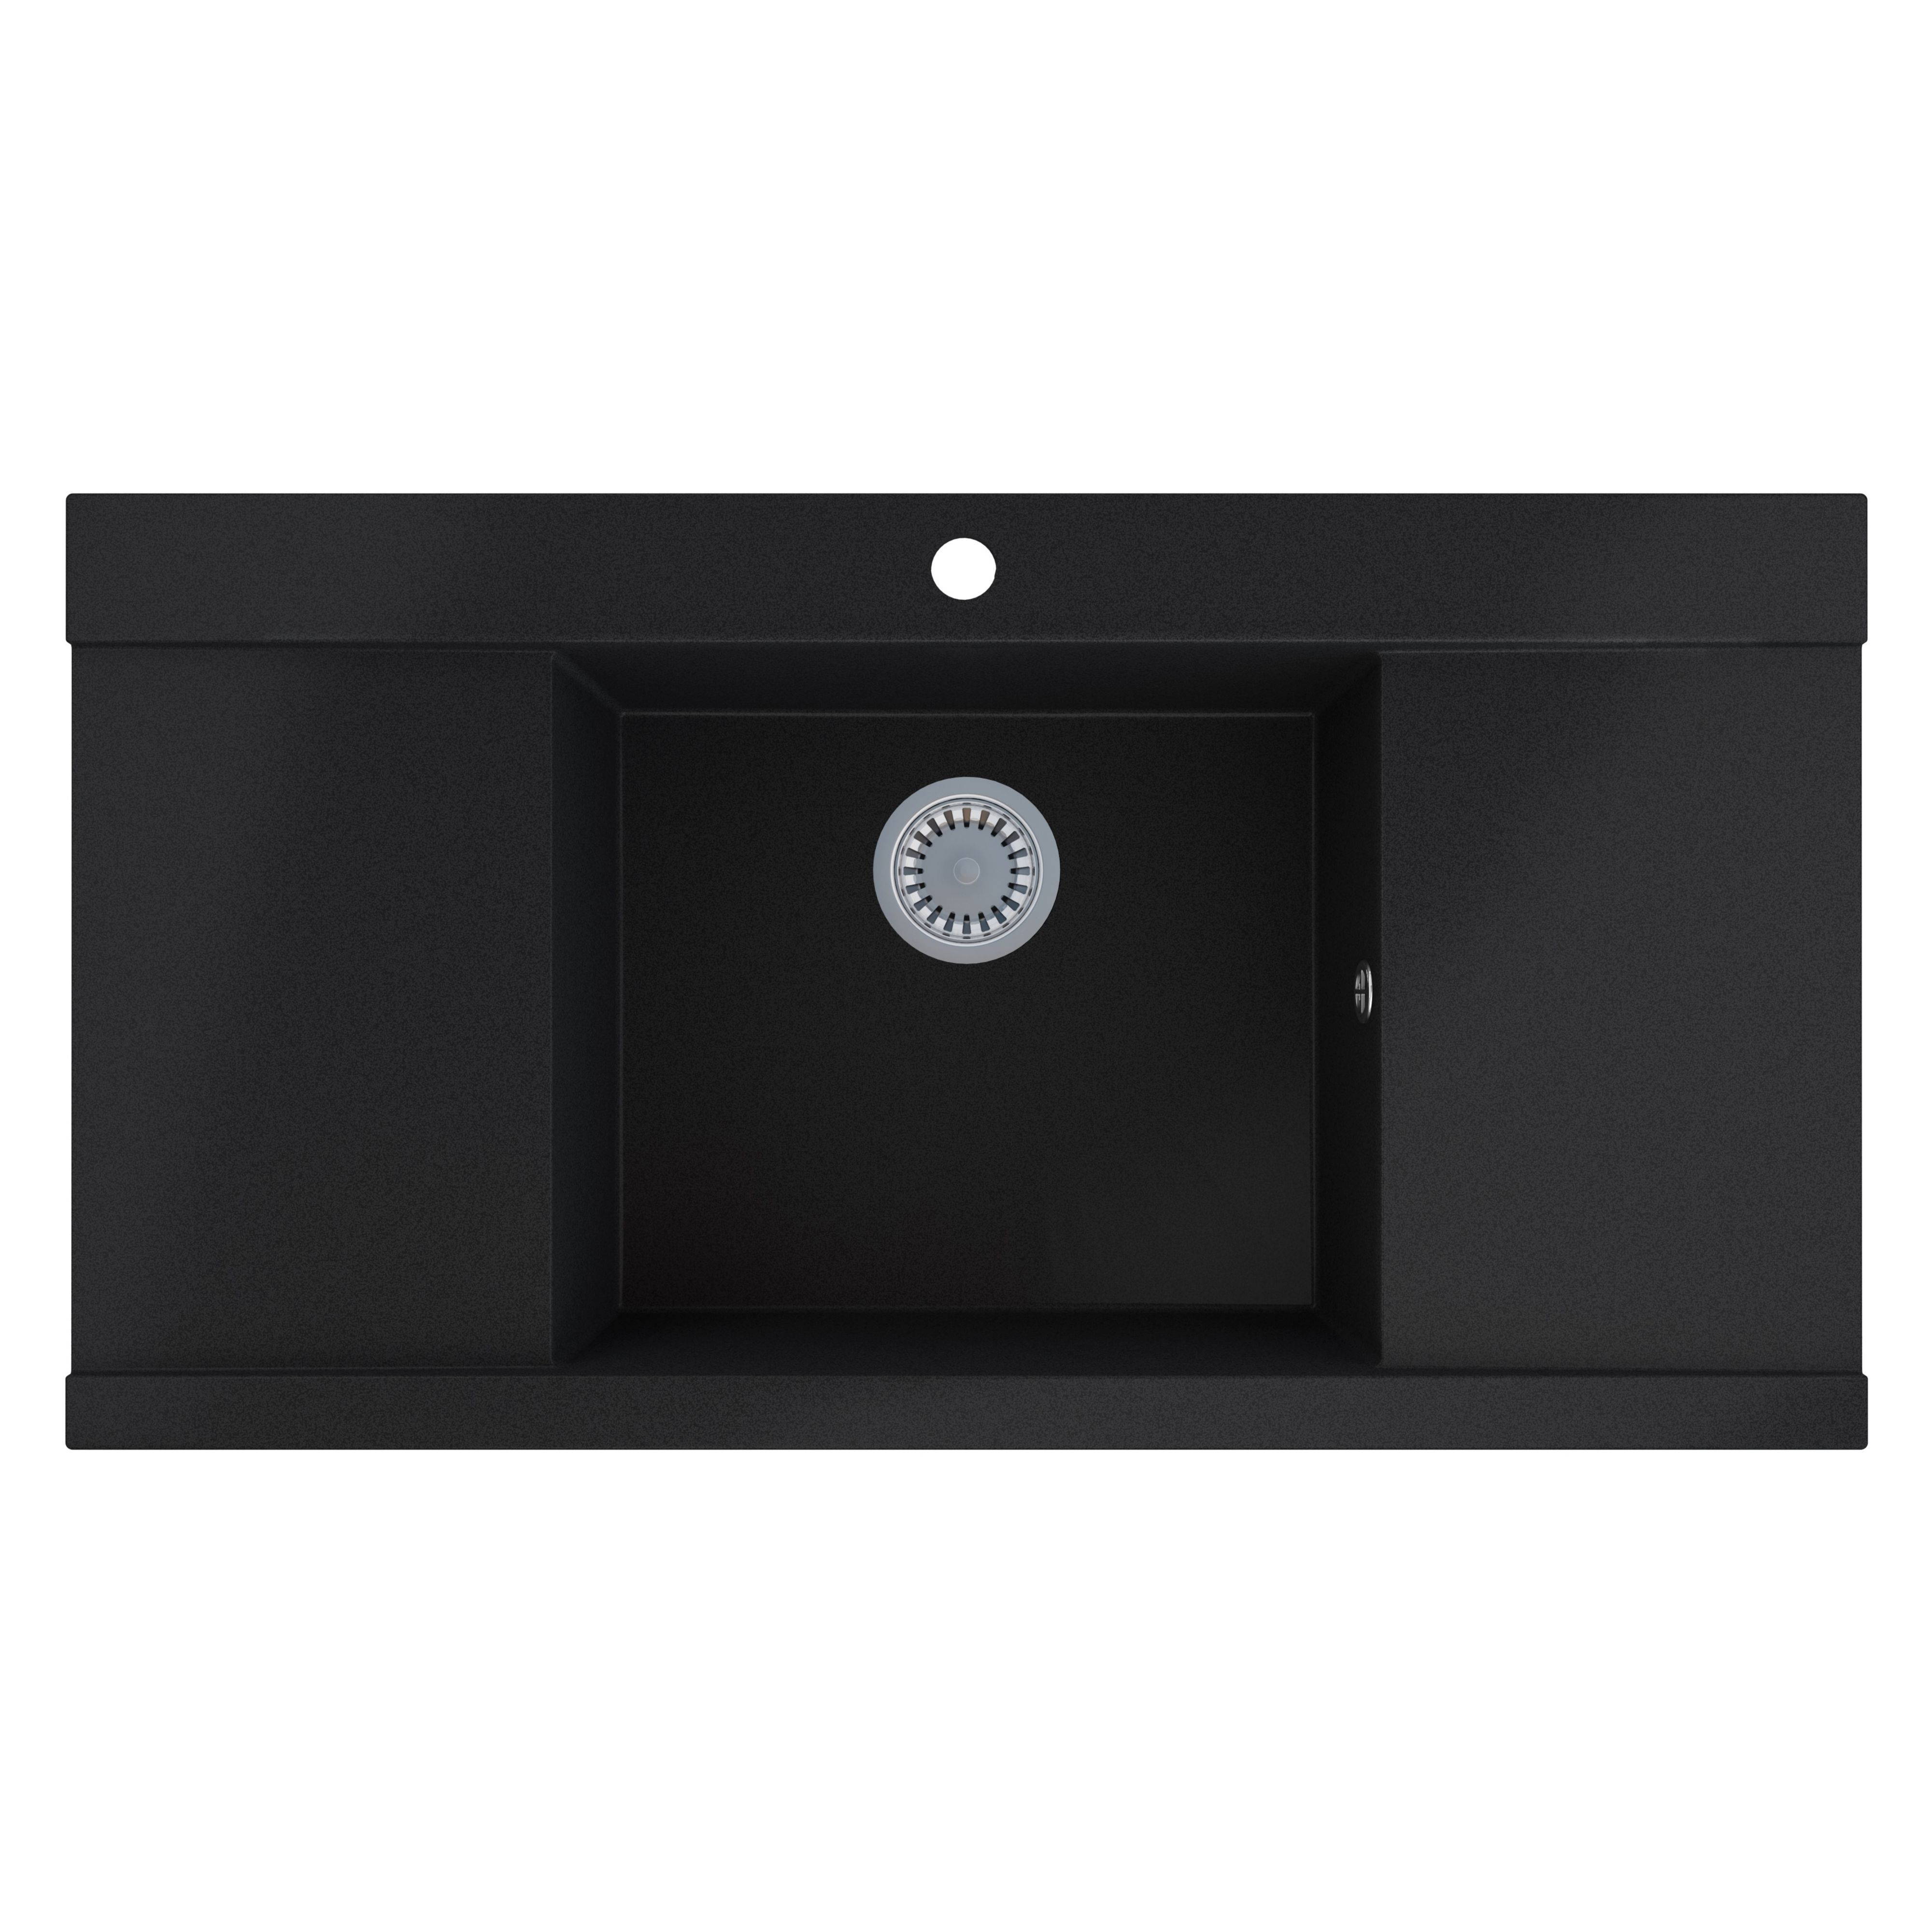 Cooke And Lewis Kitchen Sinks Cooke lewis 1 bowl black metallic granite sink with two drainers cooke lewis 1 bowl black metallic granite sink with two drainers departments diy at bq workwithnaturefo